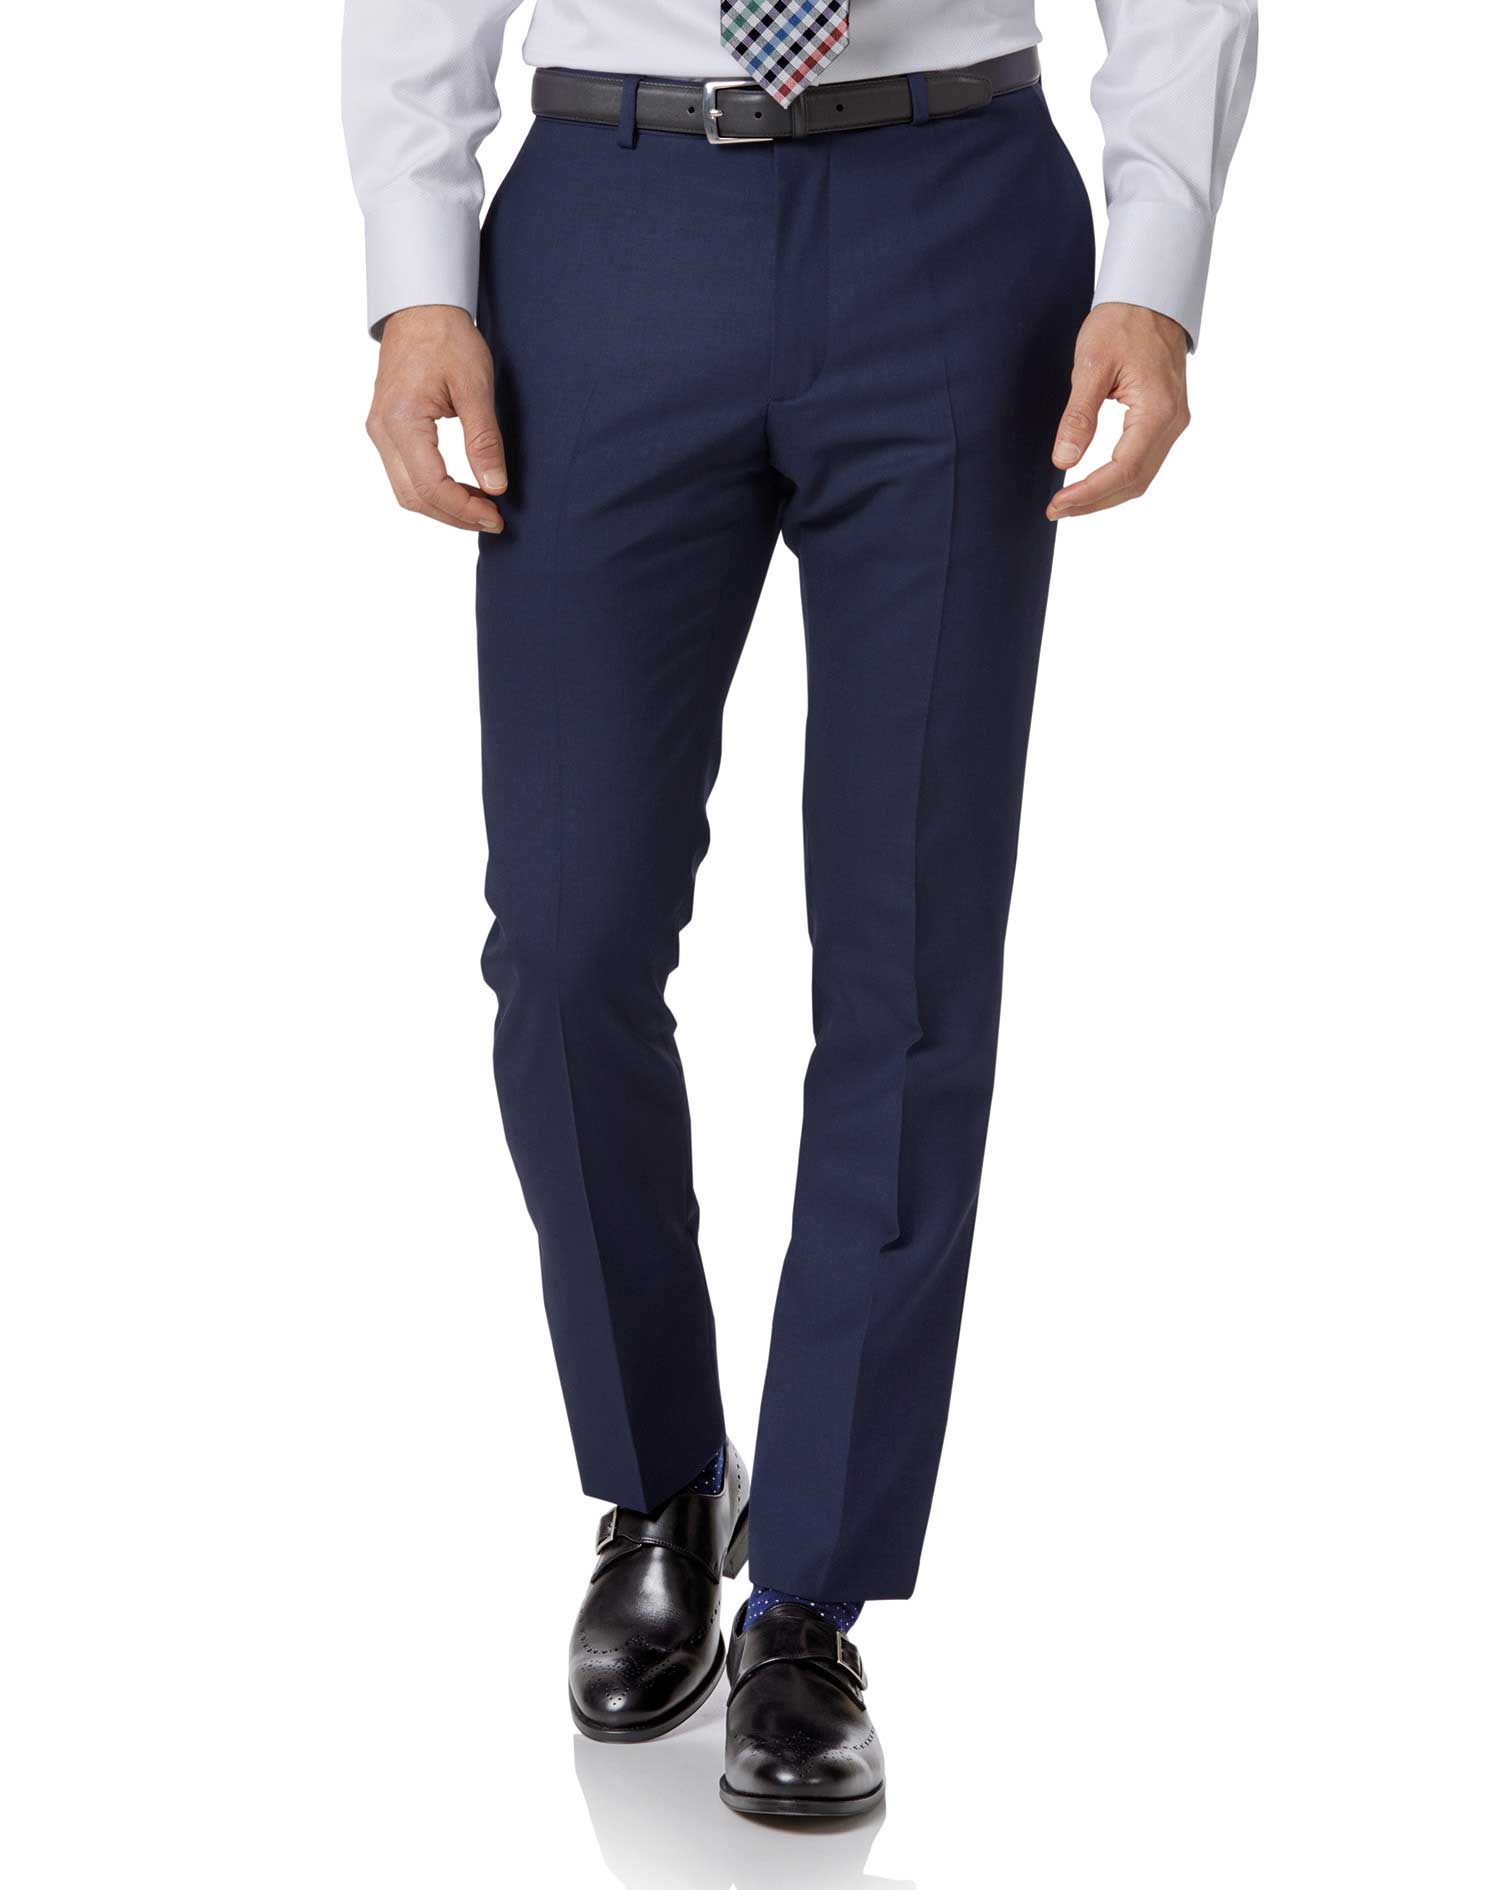 Royal Blue Extra Slim Fit Merino Business Suit Trousers Size W36 L34 by Charles Tyrwhitt